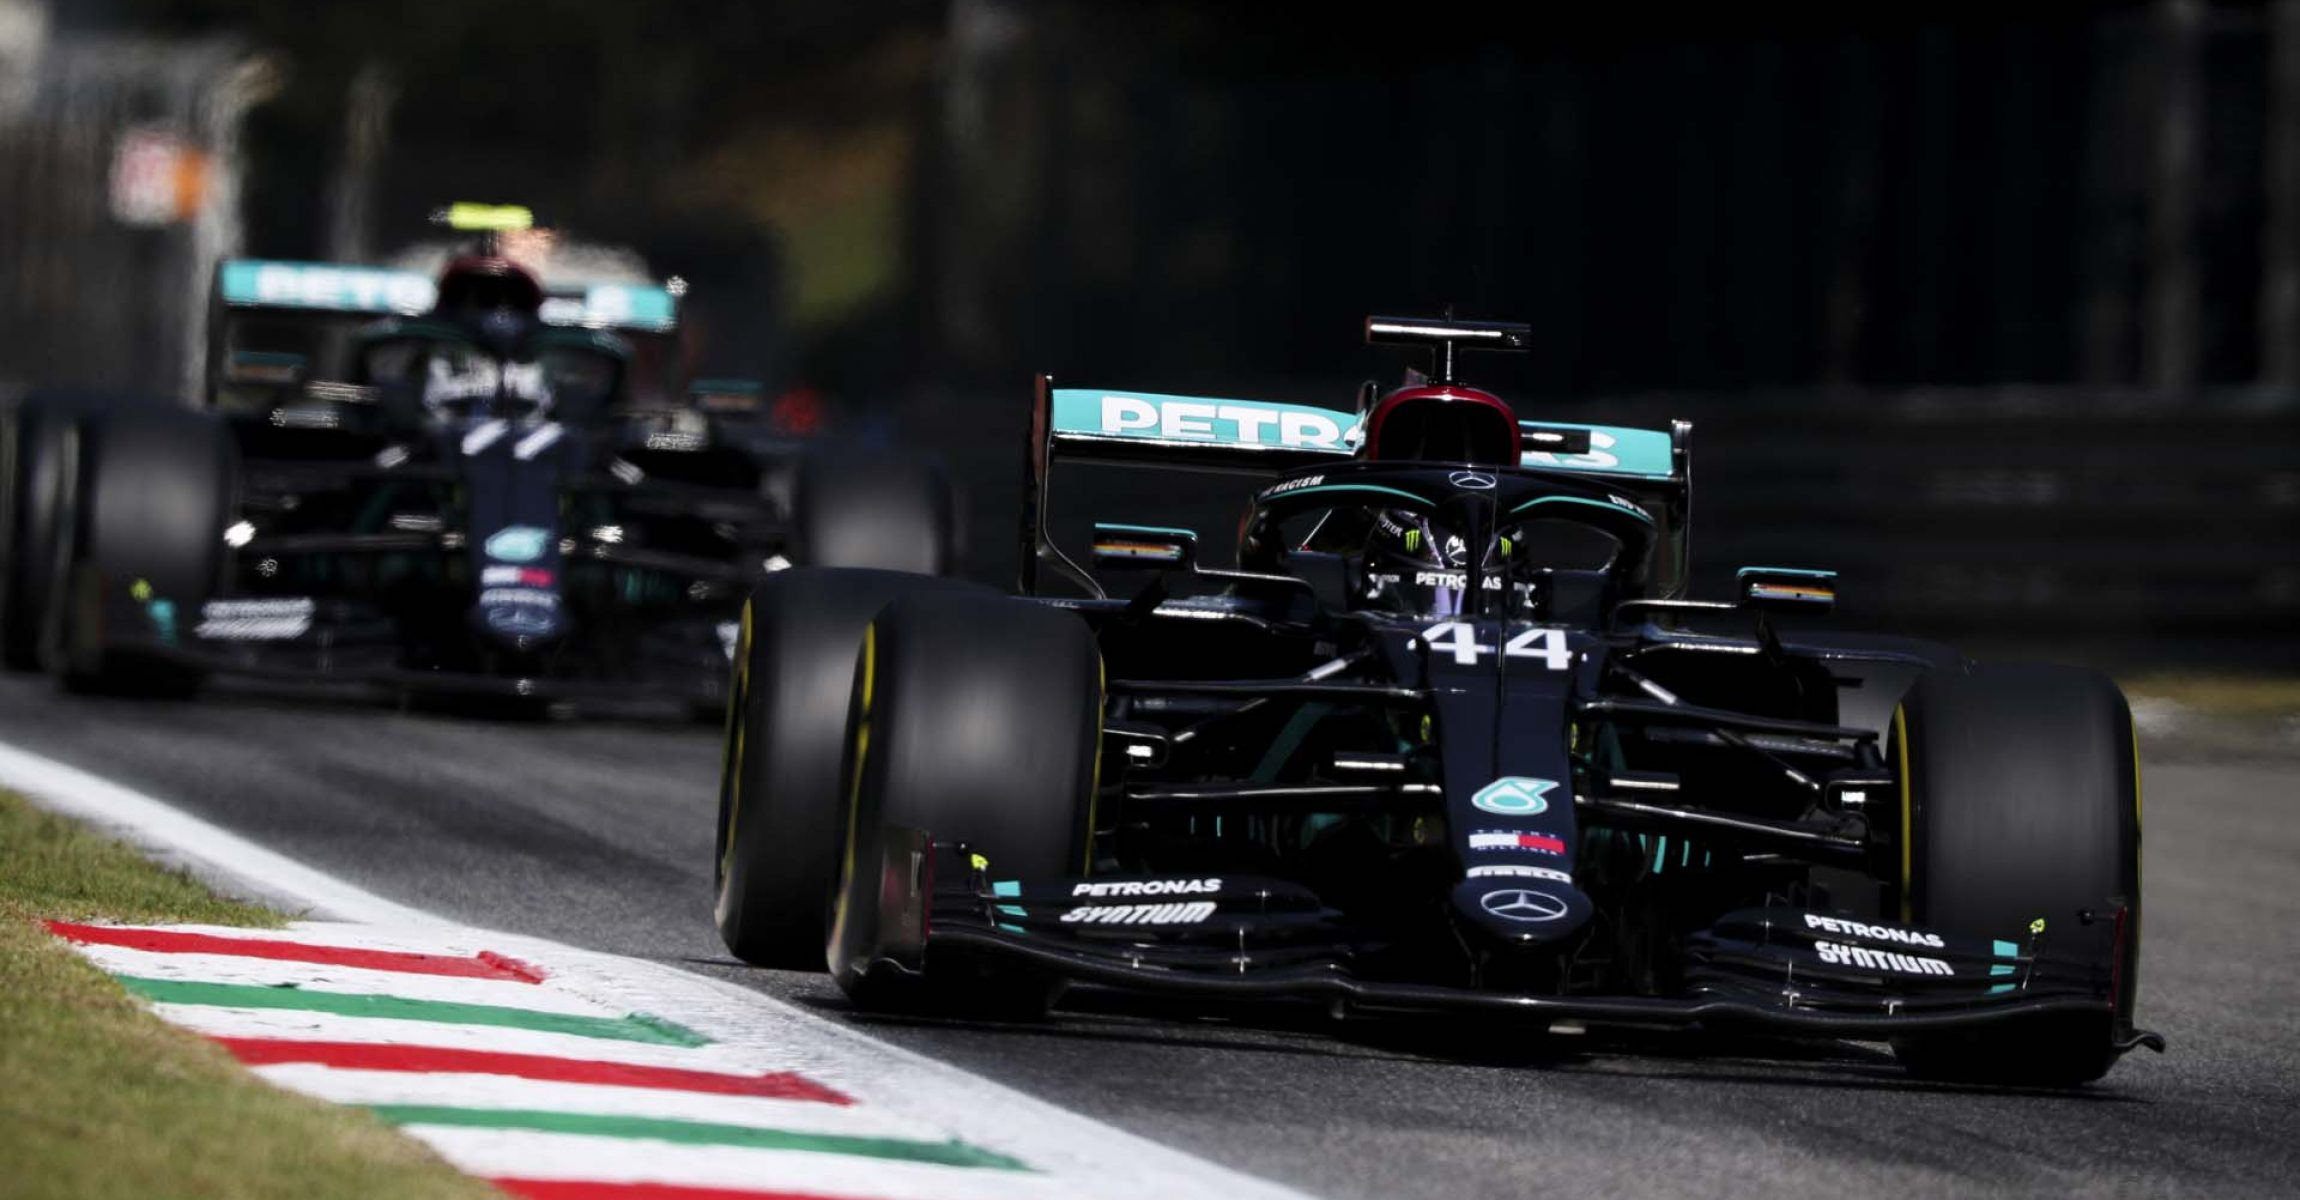 2020 Italian Grand Prix, Friday - LAT Images Lewis Hamilton Mercedes followed by Valtteri Bottas